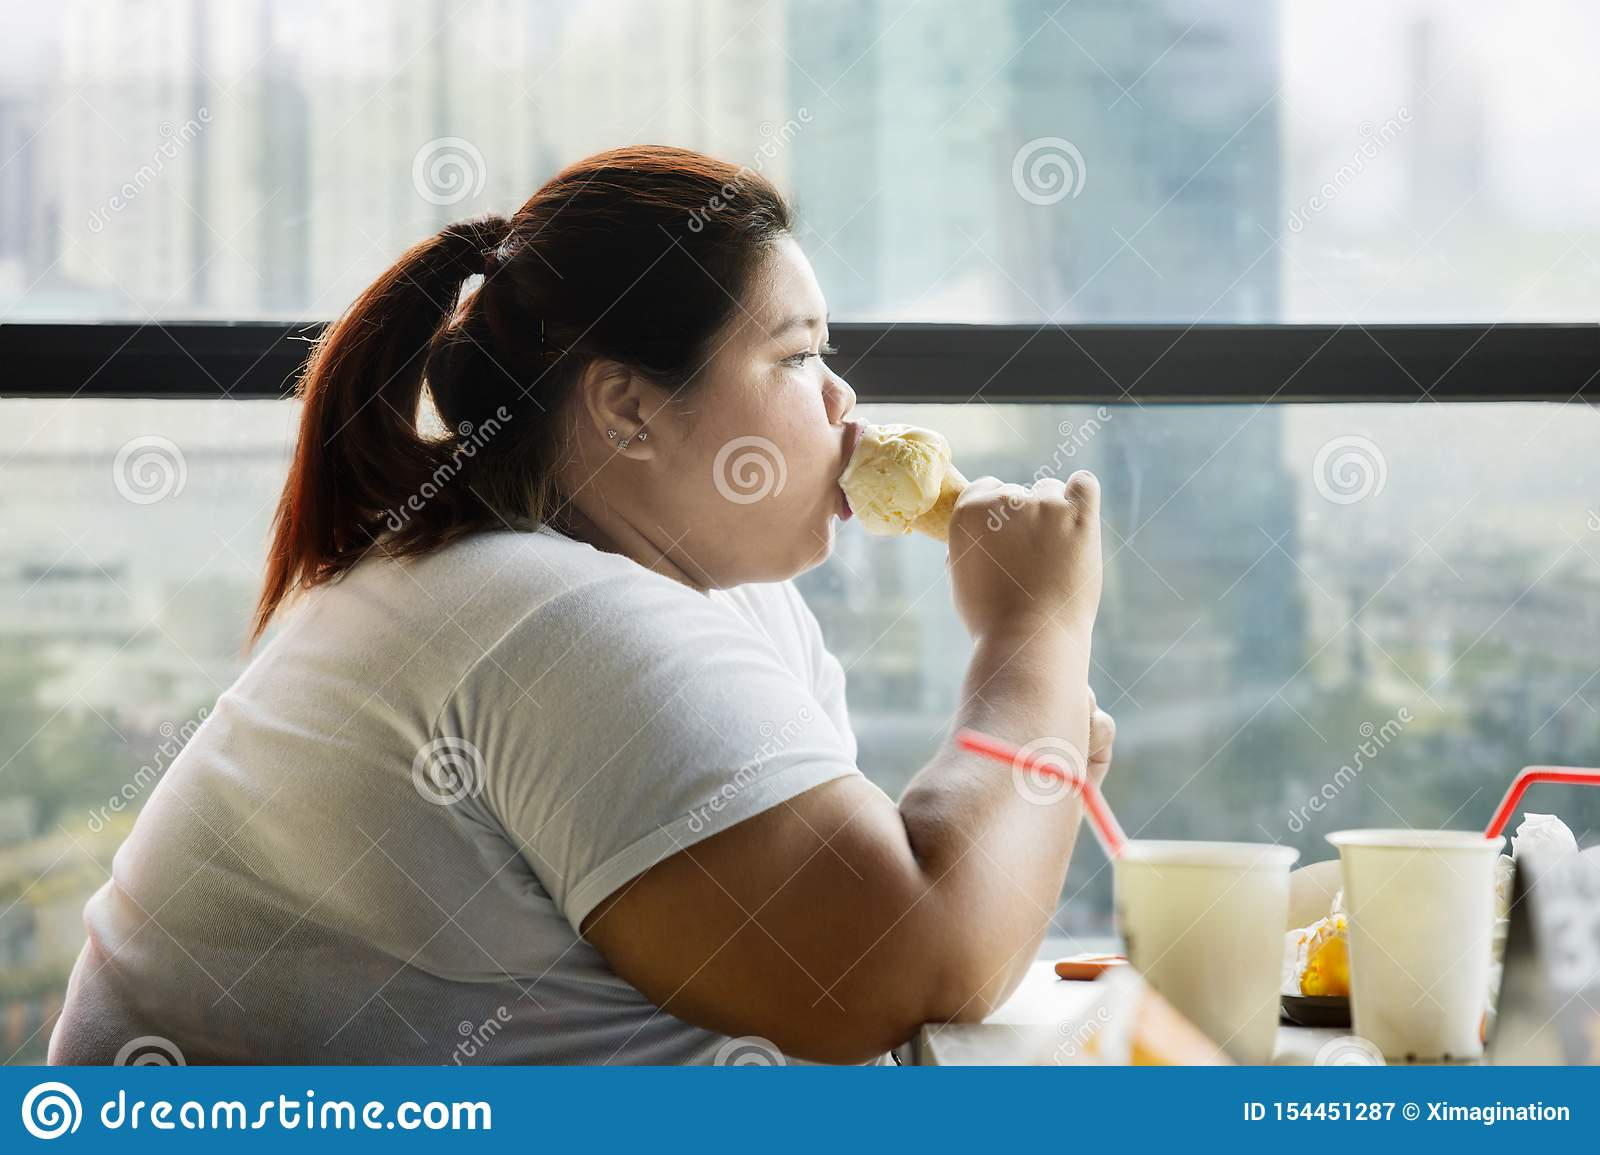 Naked fat girl sundae 4 604 Cafe Cream Eating Ice Photos Free Royalty Free Stock Photos From Dreamstime